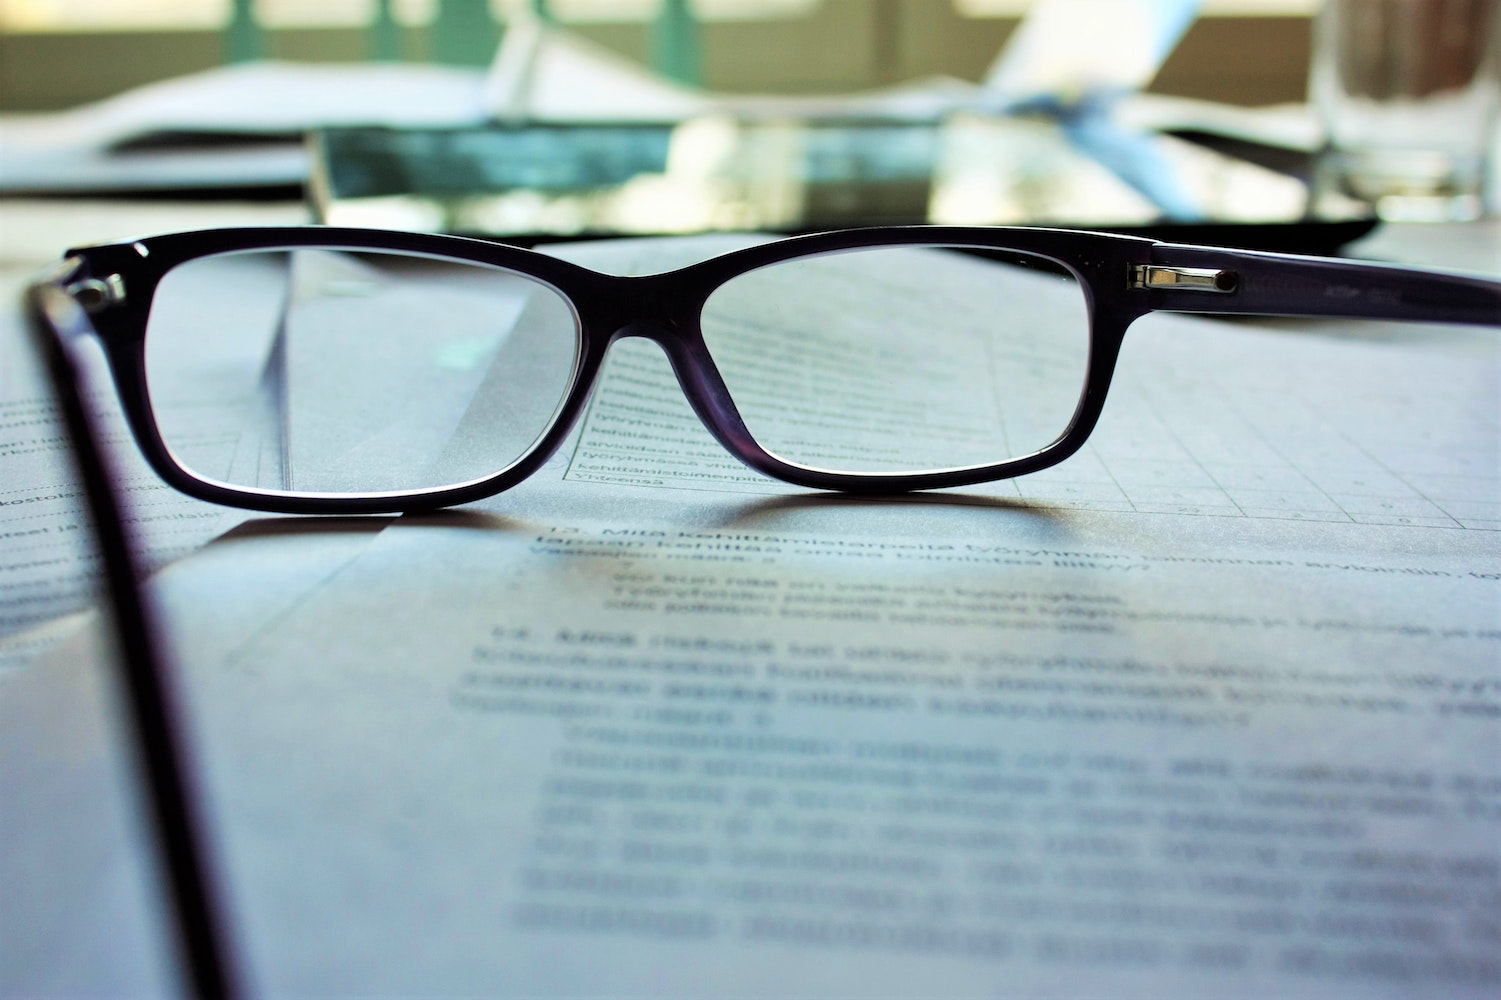 boilerplate contract | glasses on papers